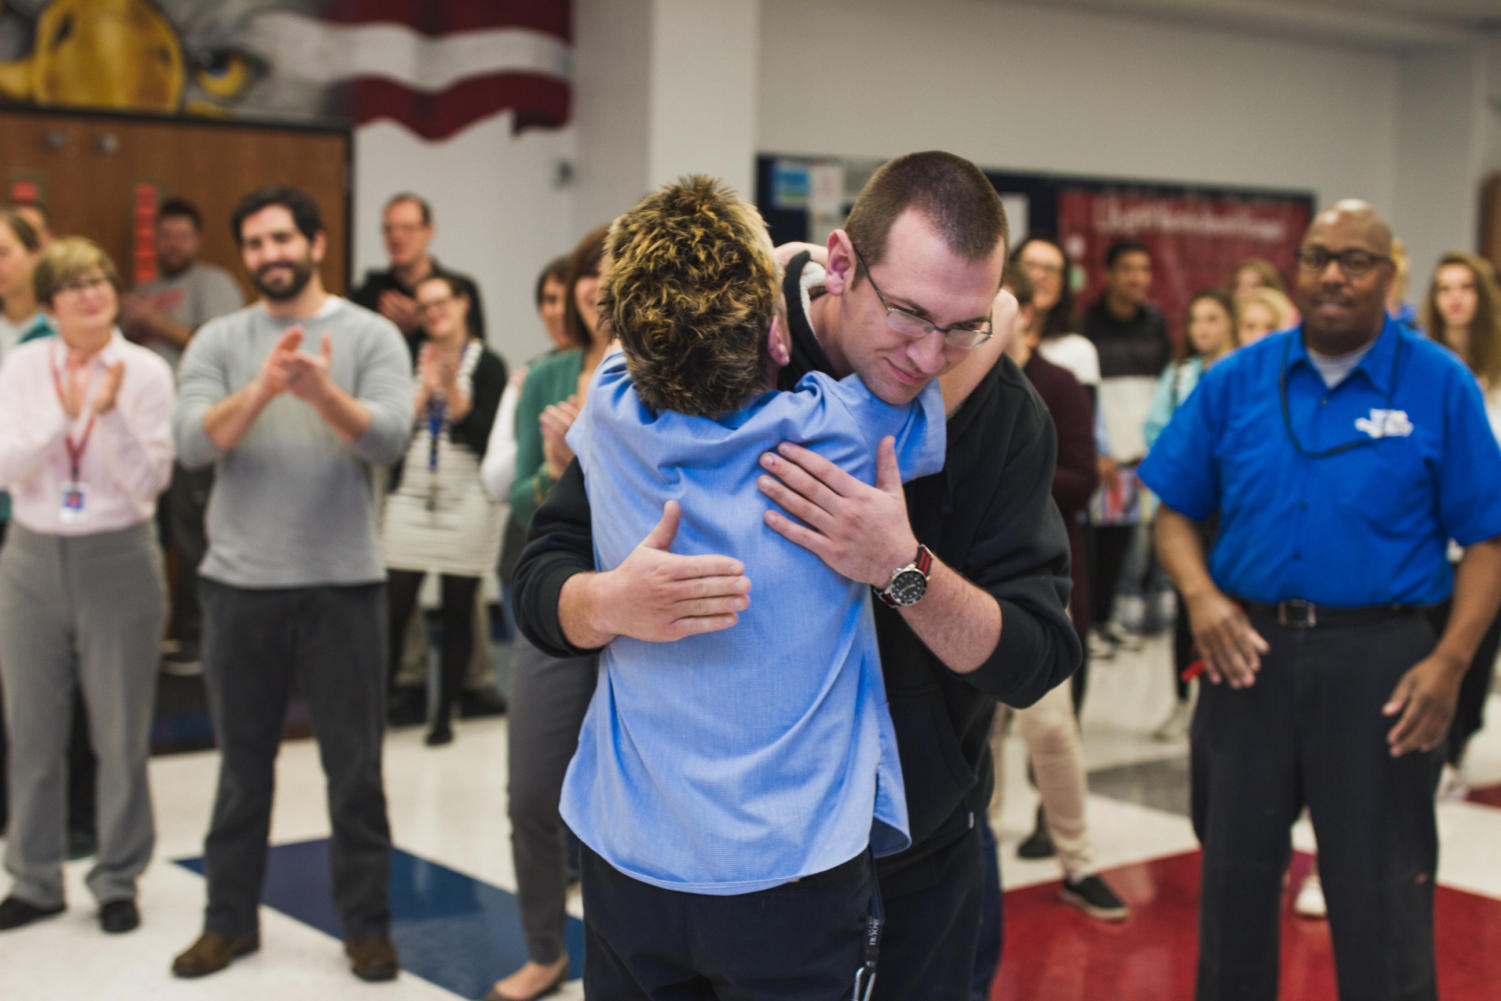 Mr. Boswell proudly hugs his mom after accepting his award. Both of the Boswells had no idea that Mr. Boswell would win the award, which made the surprise that much better.